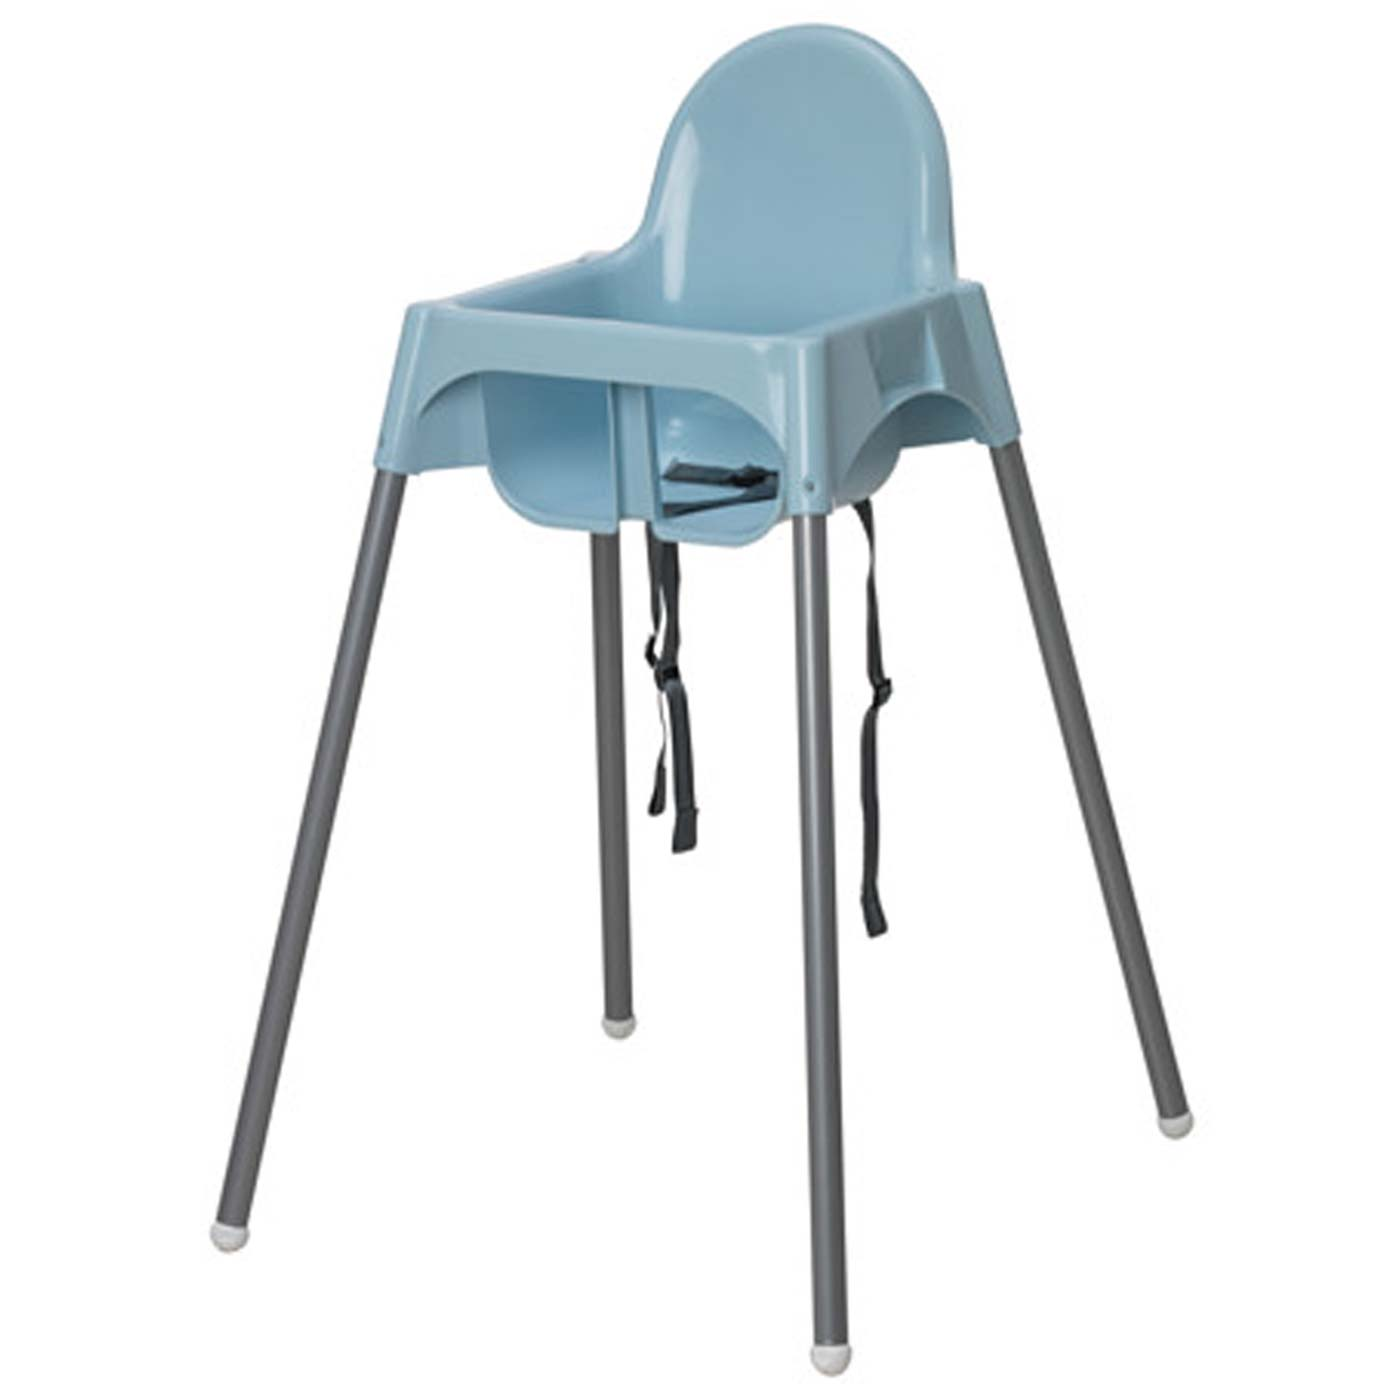 IKEA Antilop Highchair Blue with White Tray